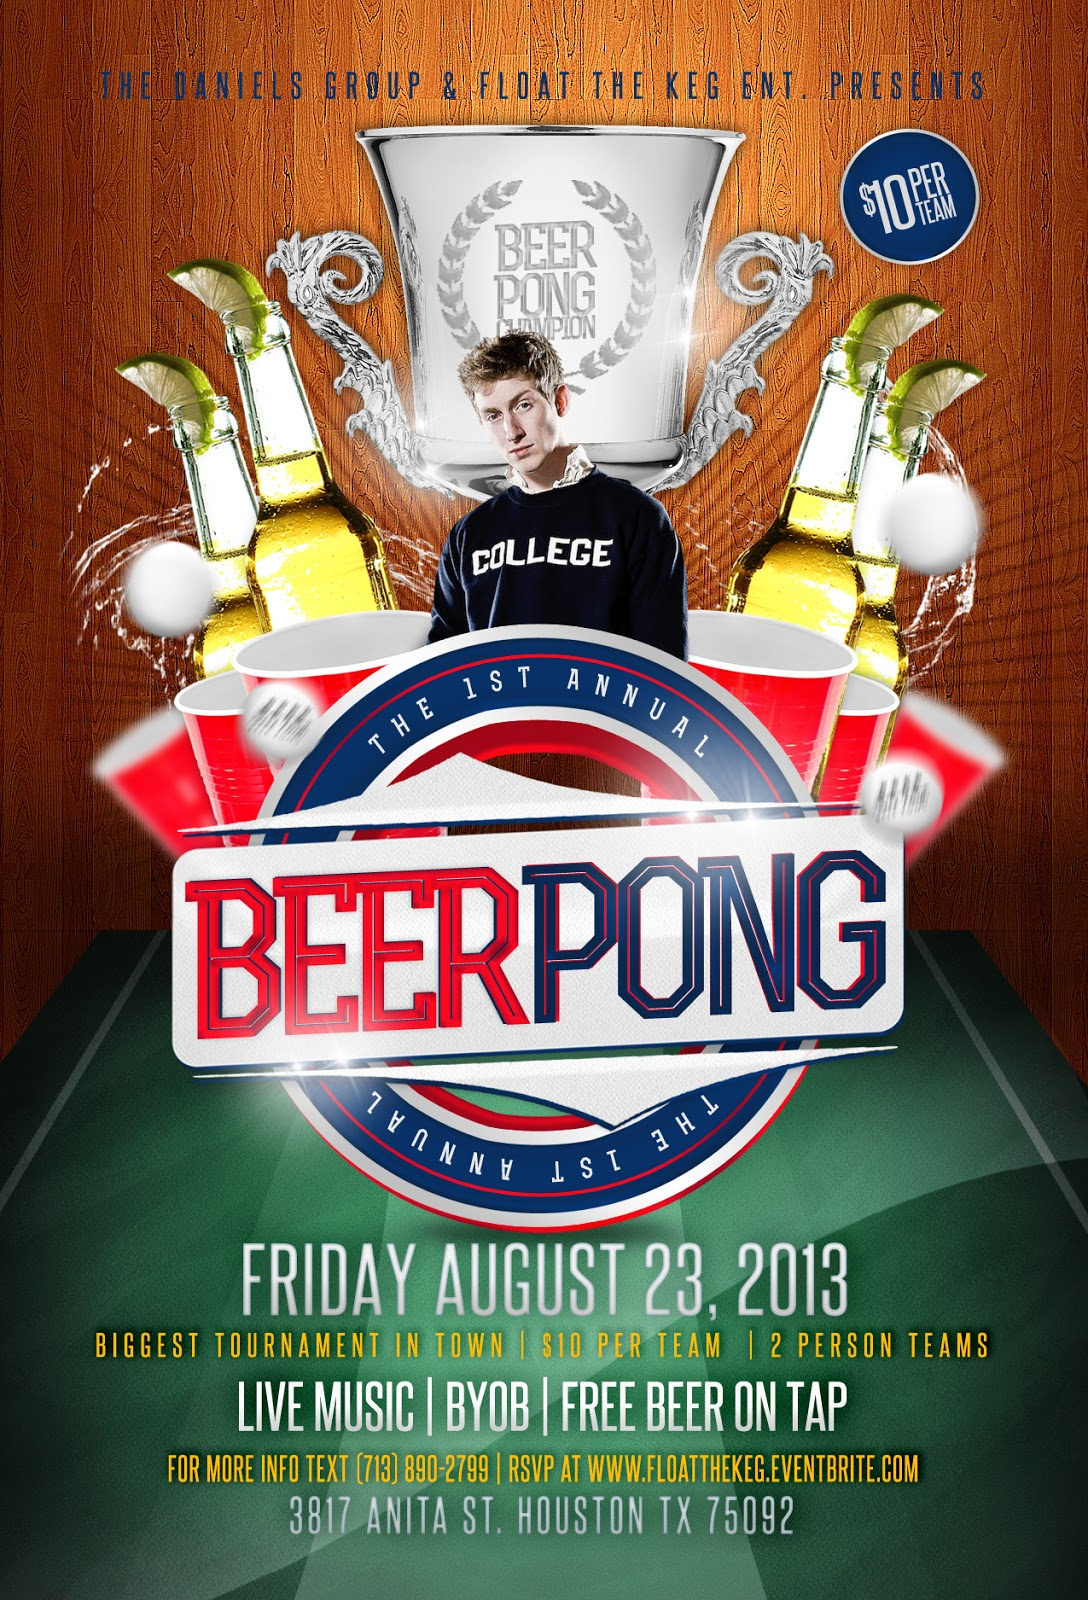 1st Annual Beer Pong Tournament Keg Party